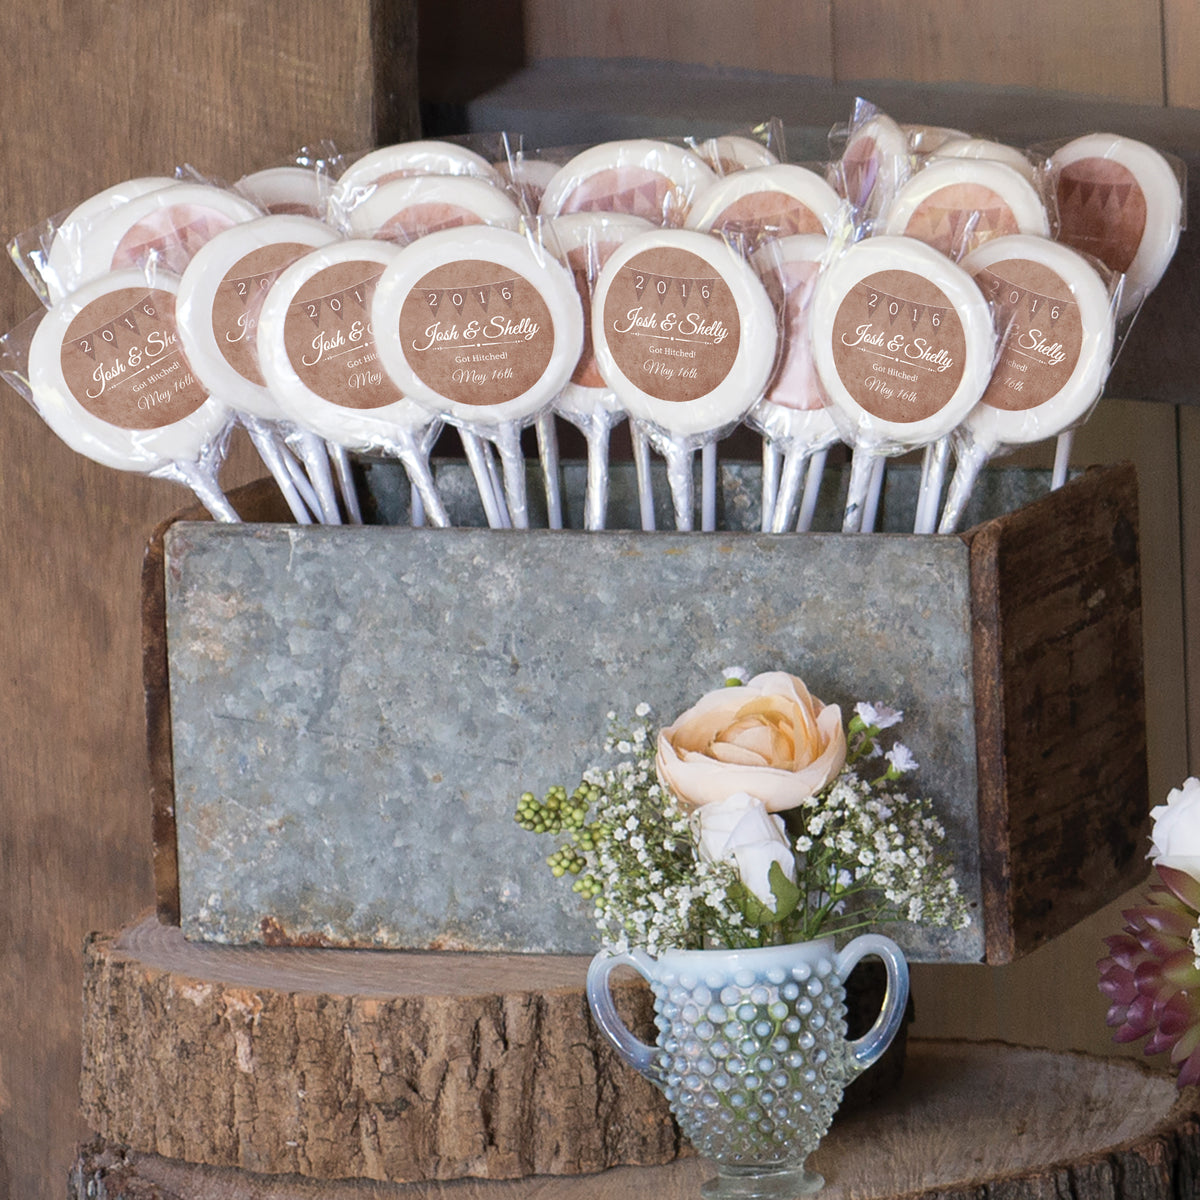 Basketball Court White Swirl Lollipops